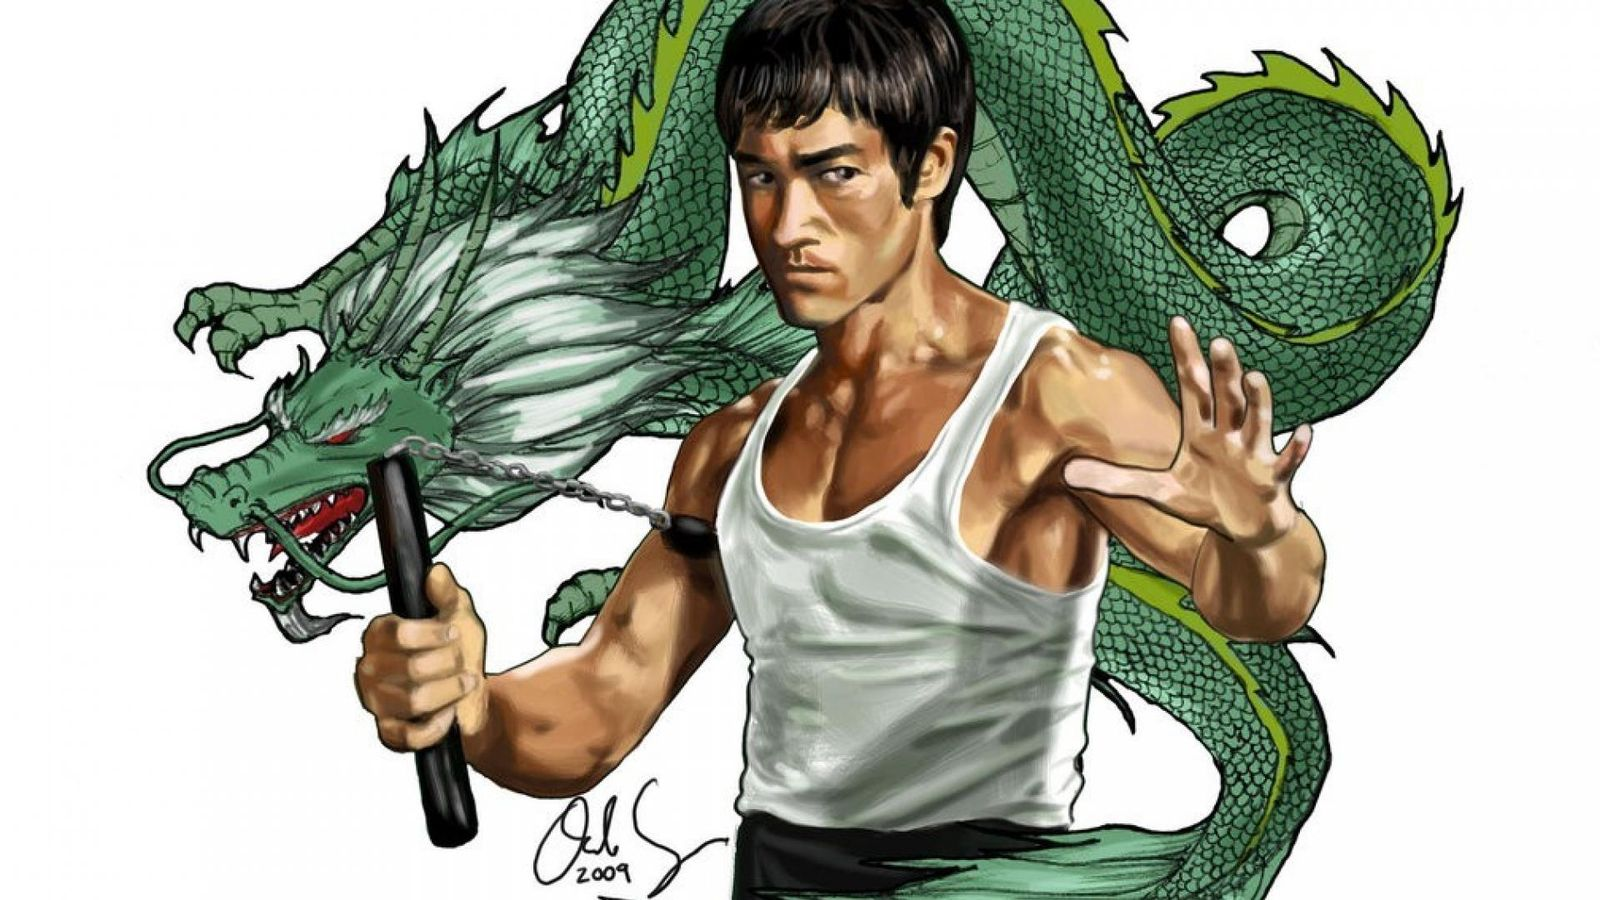 1600x900 - Bruce Lee Wallpapers 4